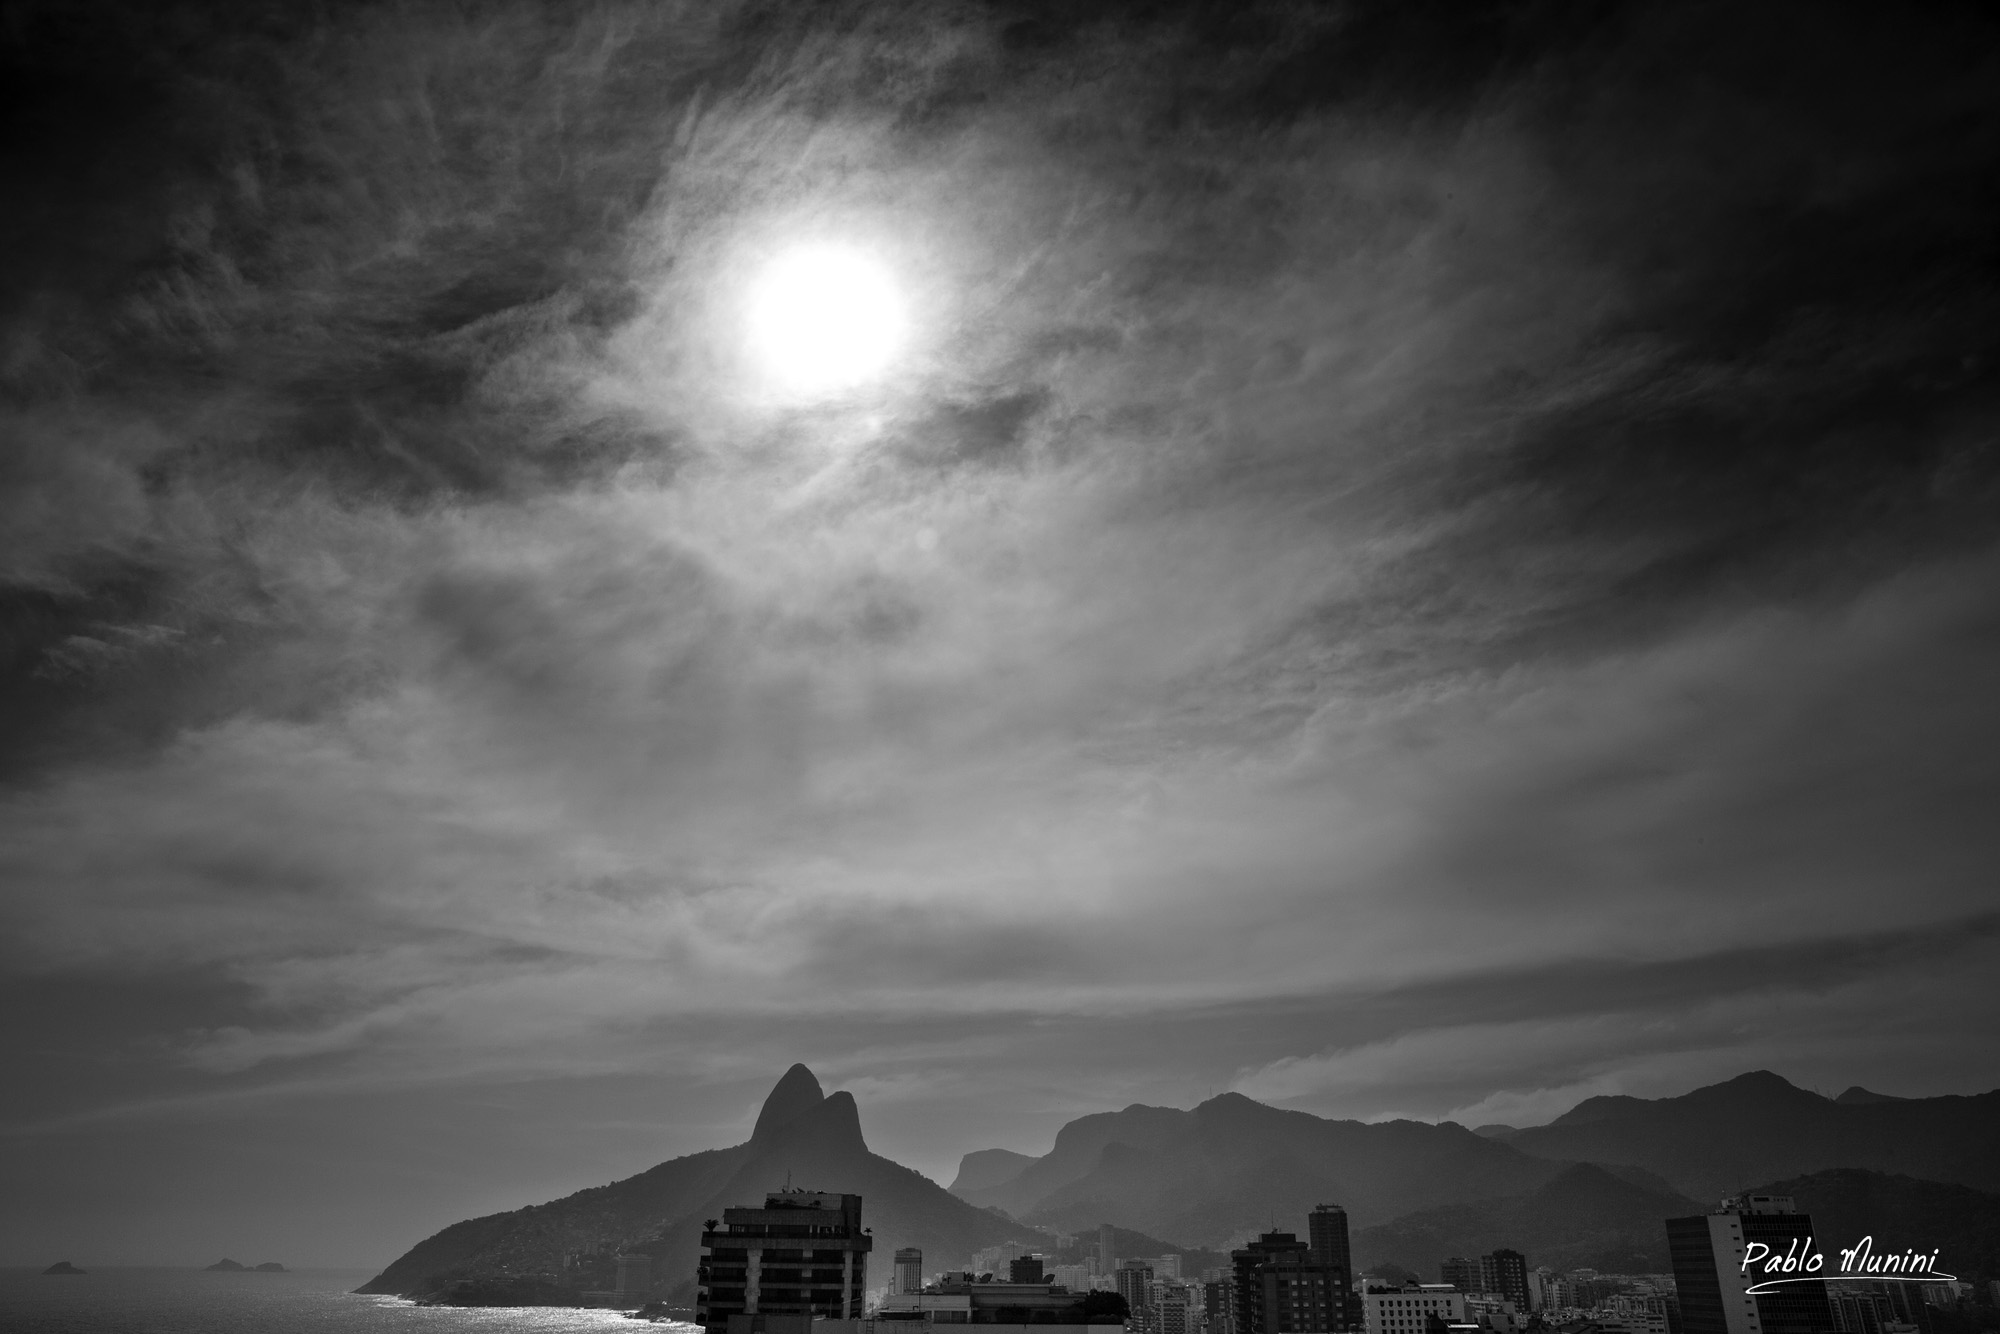 Skyline in ipanema backdrop two brother mountains rio pablo munini